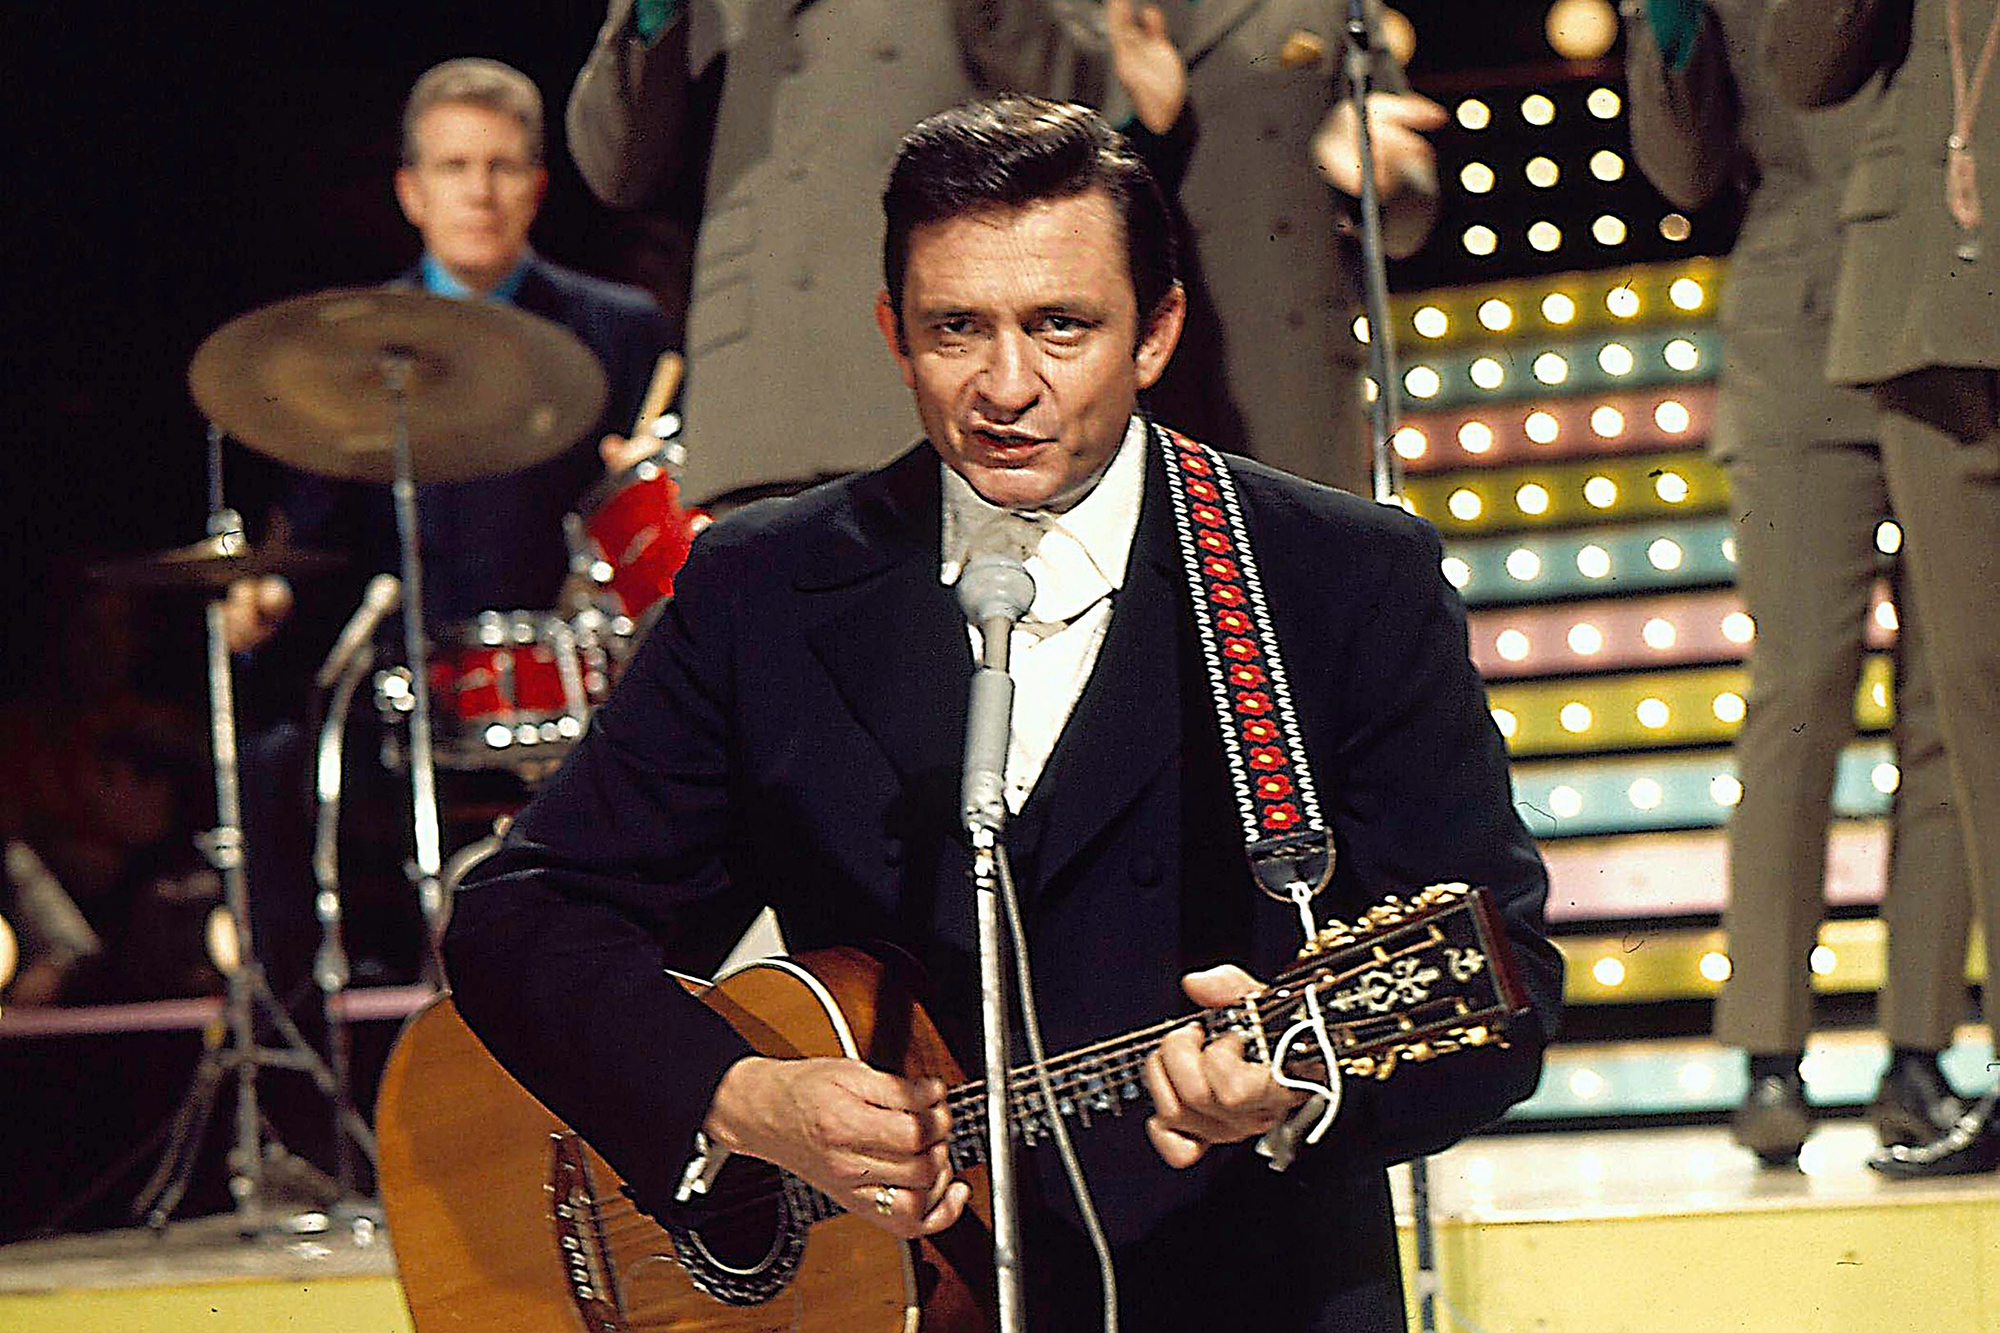 Flashback: Johnny Cash Puts His Stamp on 'Sunday Morning Coming Down'